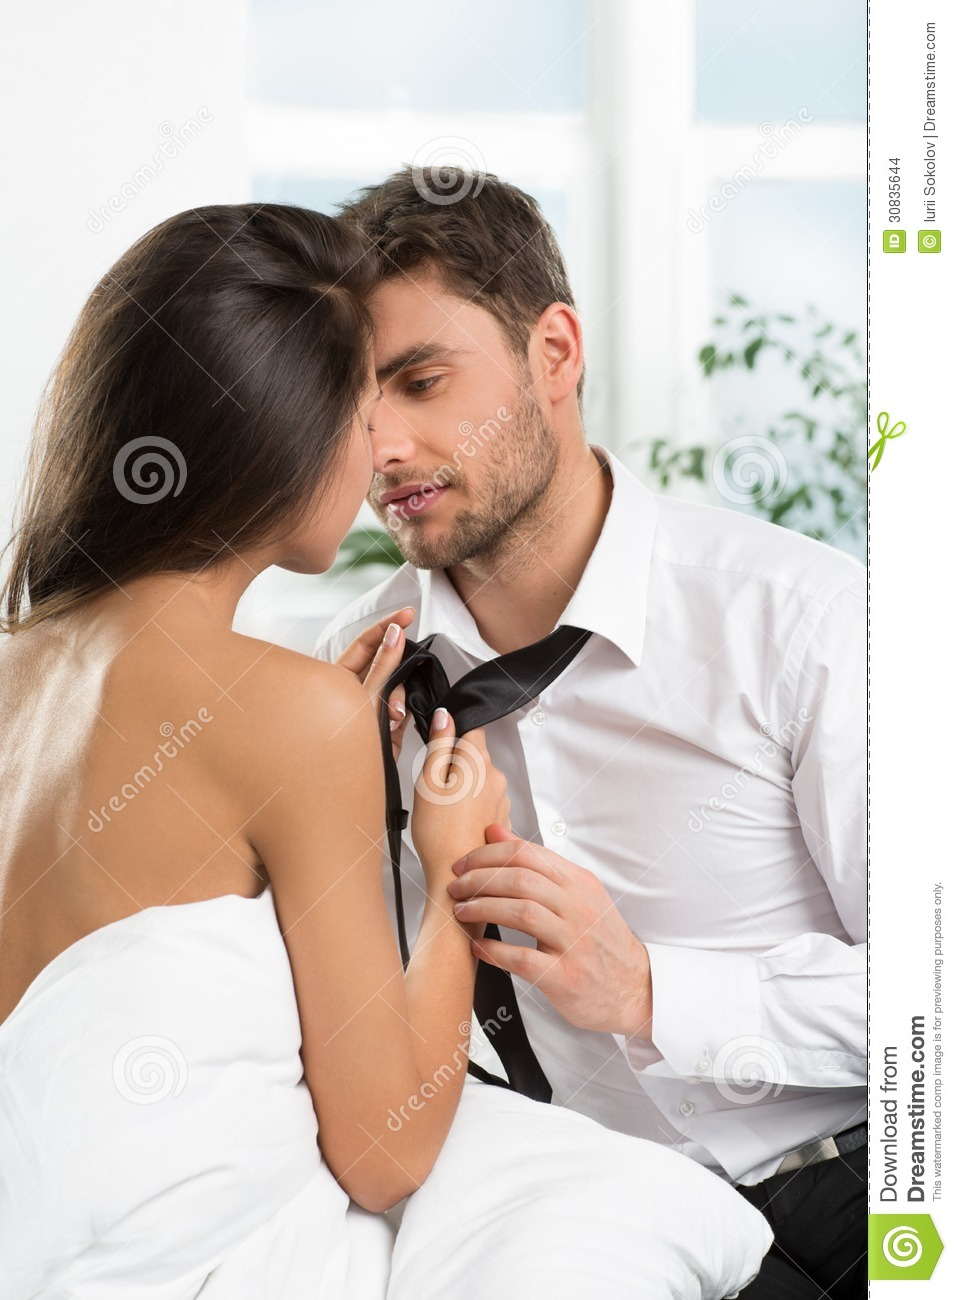 Beautiful Romantic Couple Of Lovers Stock Images - Image 30835644-1046